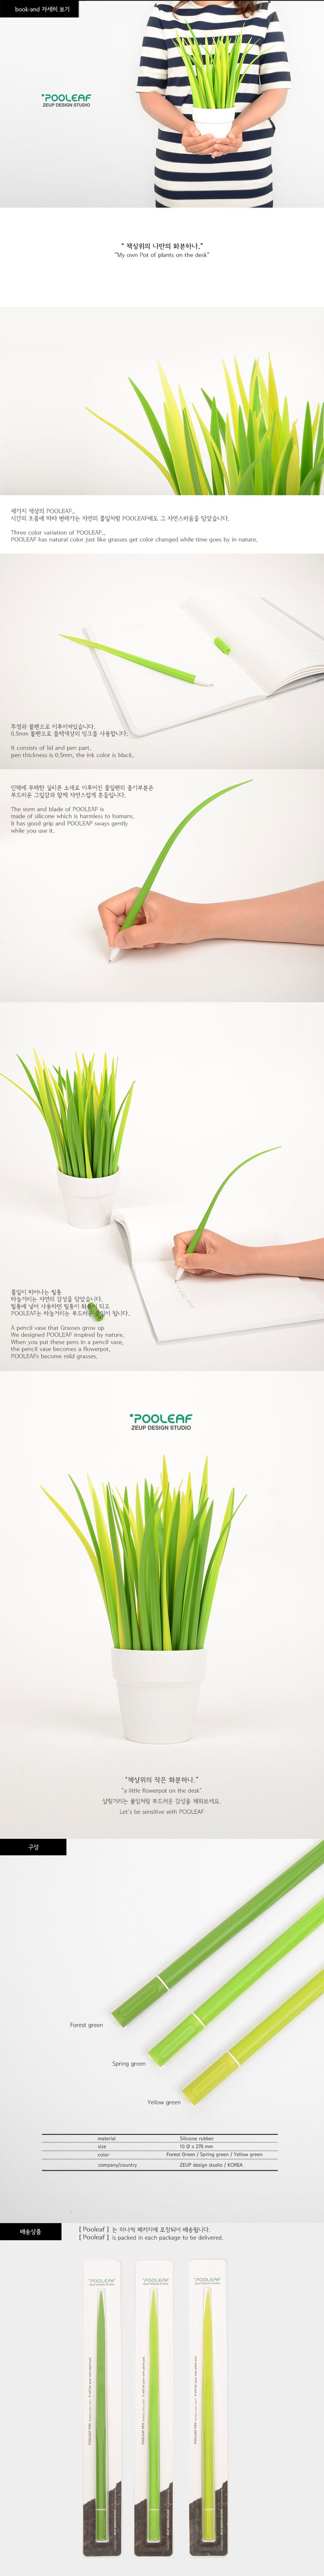 Office Plant Made Of Green Pens For Workaholics Without A Green Thumb #design